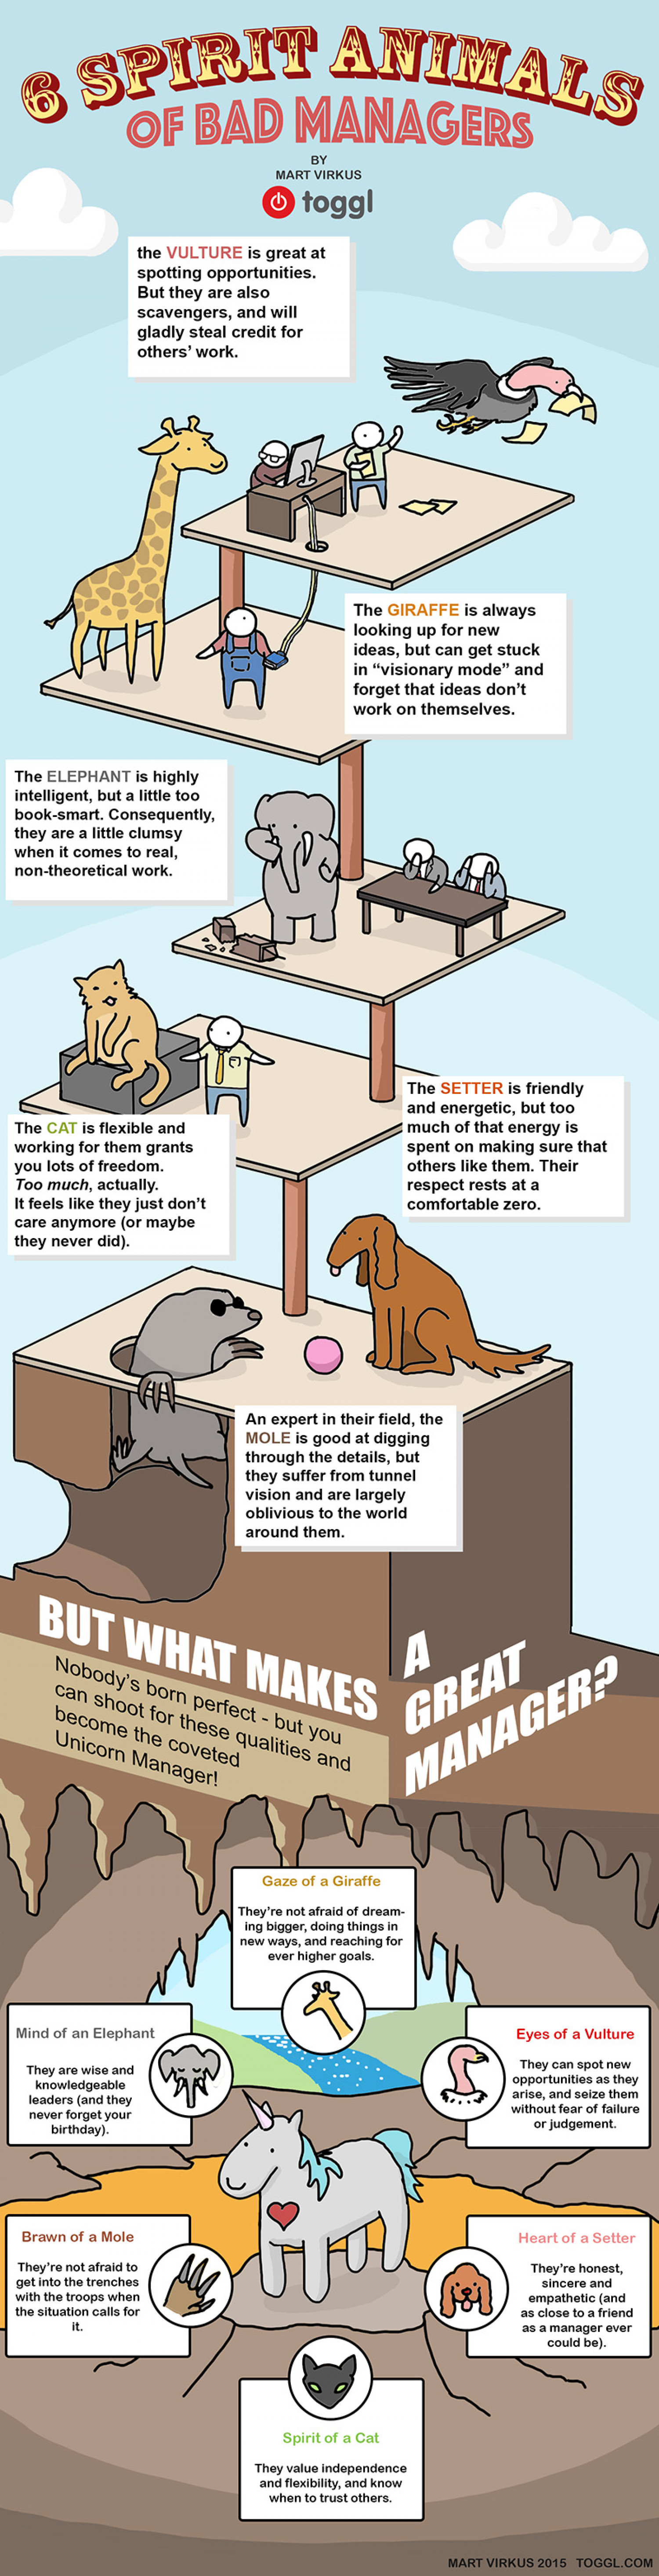 6 Spirit Animals of Bad Managers Infographic